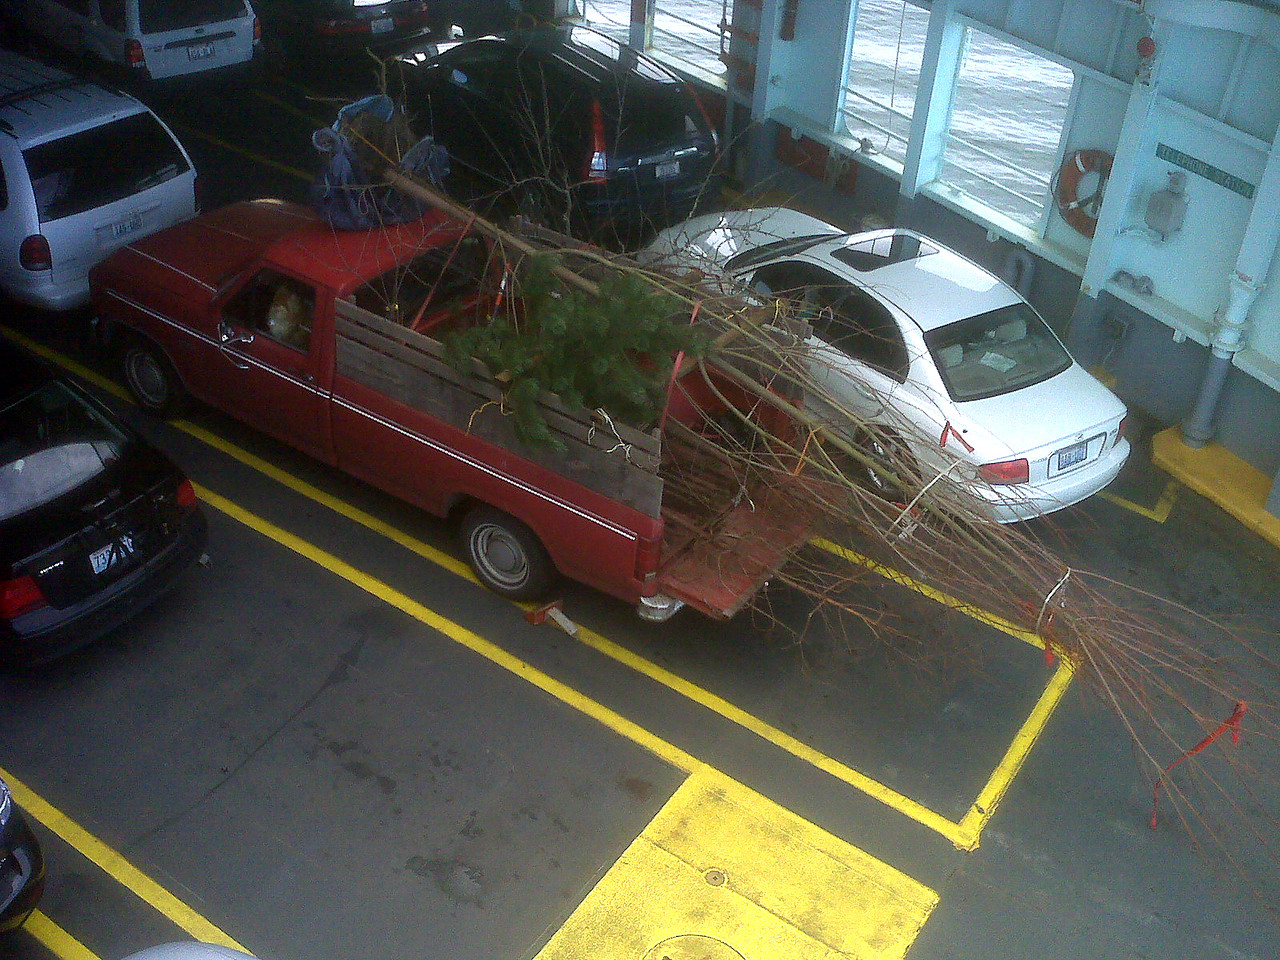 In one day:  20' Acer Maple, 7' Ponderosa Pine, Espaliered Apple, Apple, Plum, and Japanese Maple.  They put me on the boat last.  You can see why.  Truck has 185,00 miles.  Getting Tired.